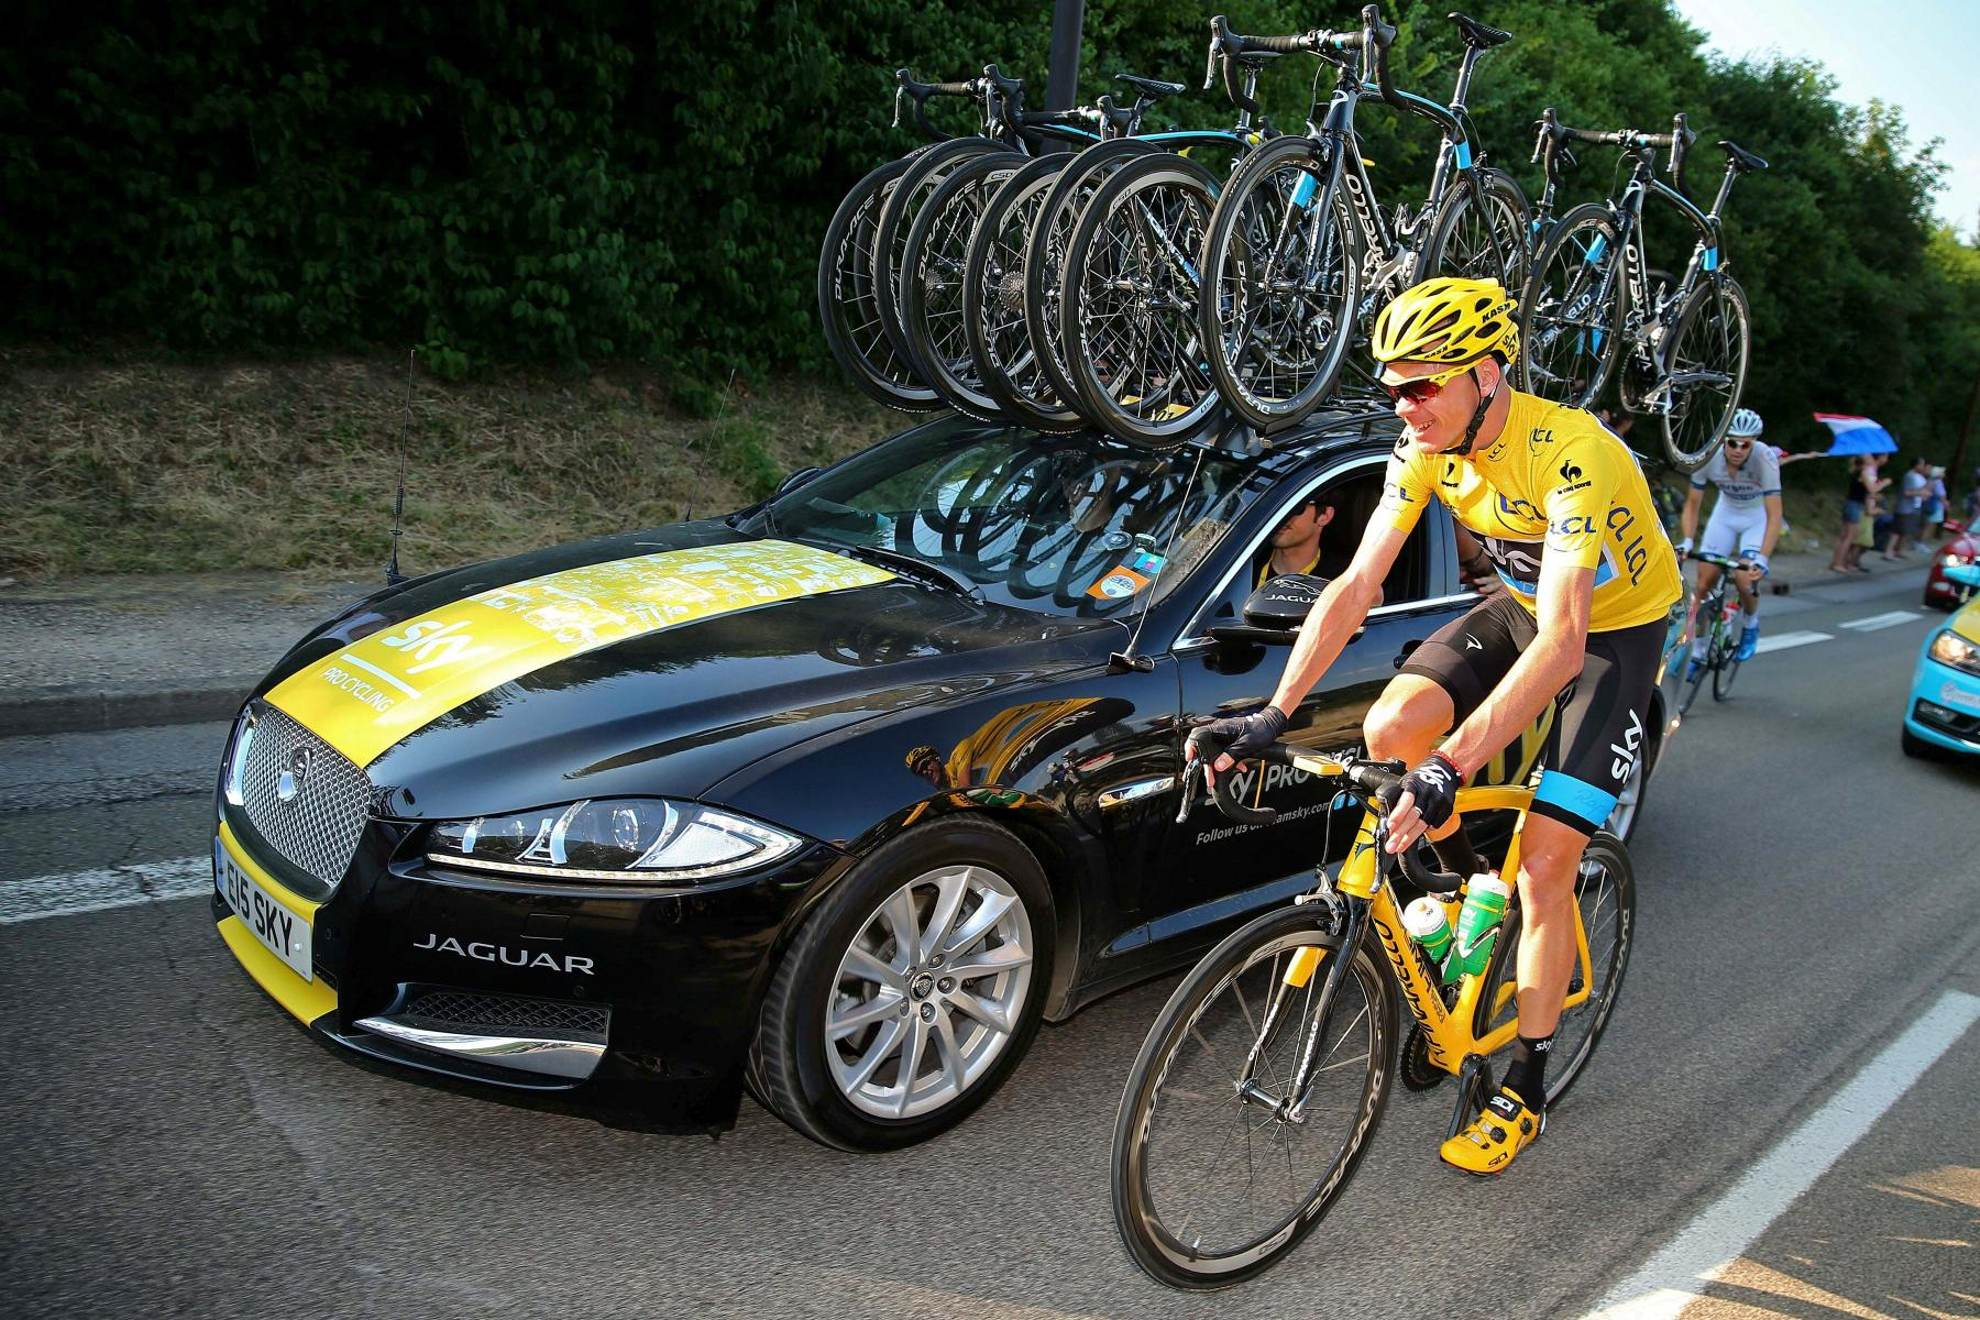 tour de france winner chris froome and jaguar. Black Bedroom Furniture Sets. Home Design Ideas